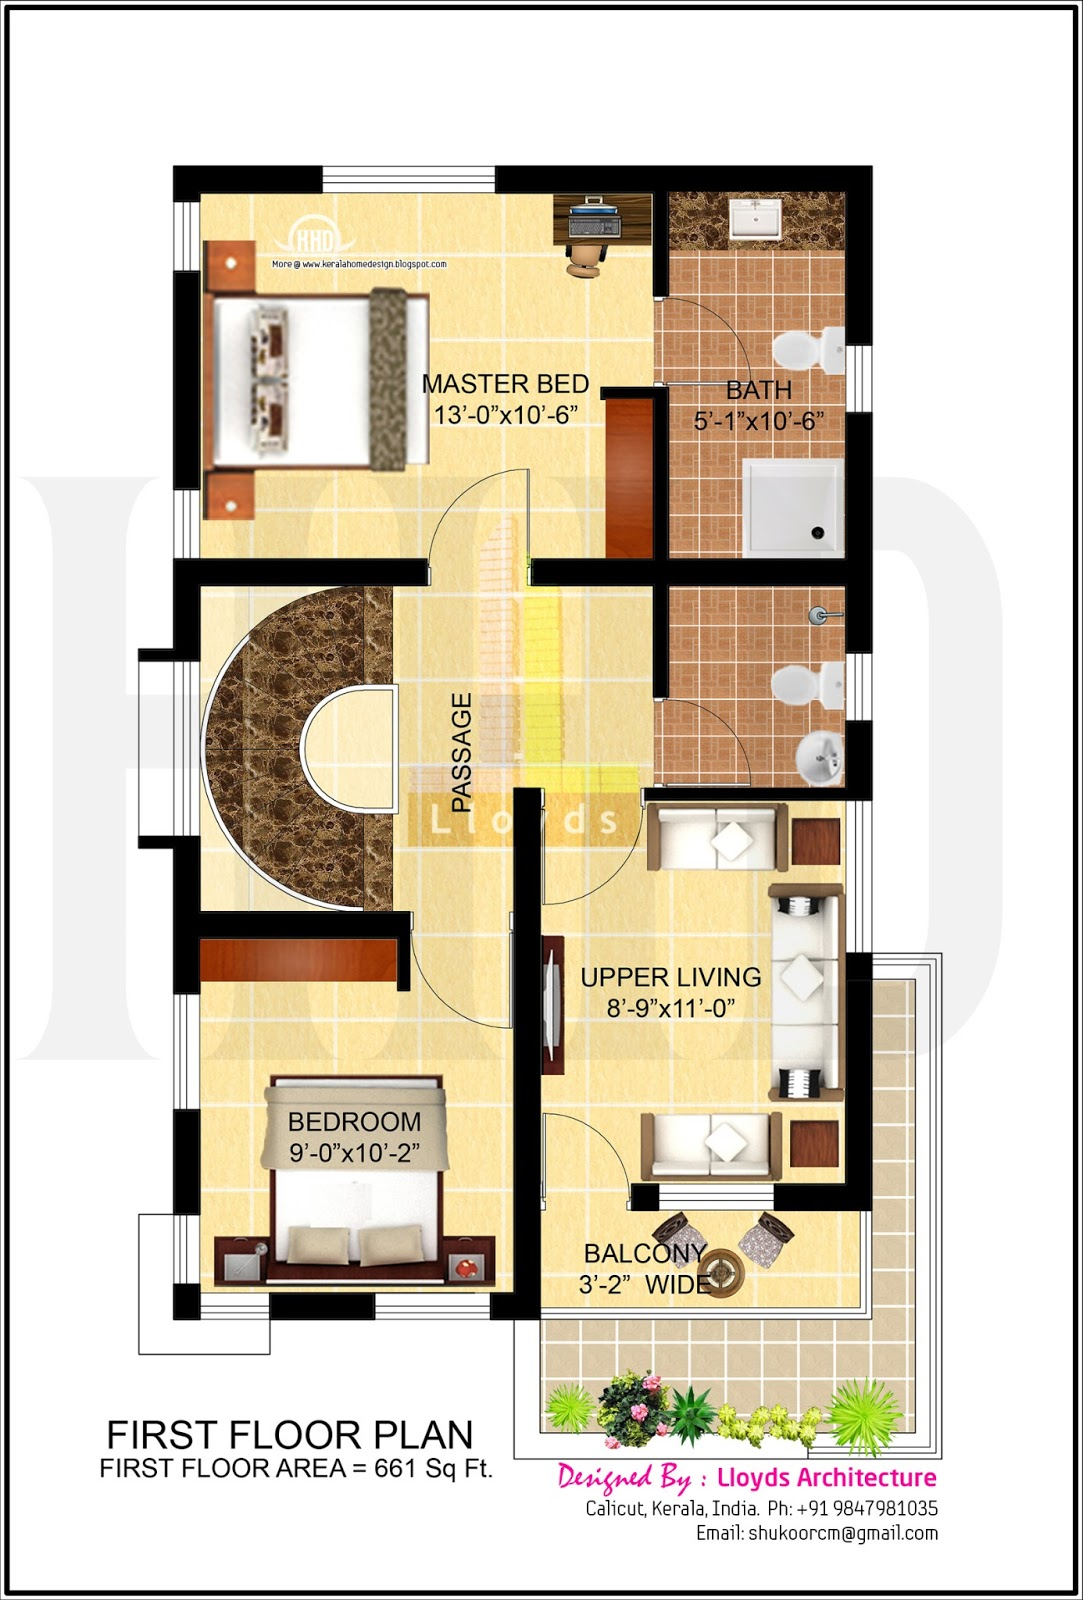 4 bedroom house plan in less that 3 cents home kerala plans for Home designs and plans